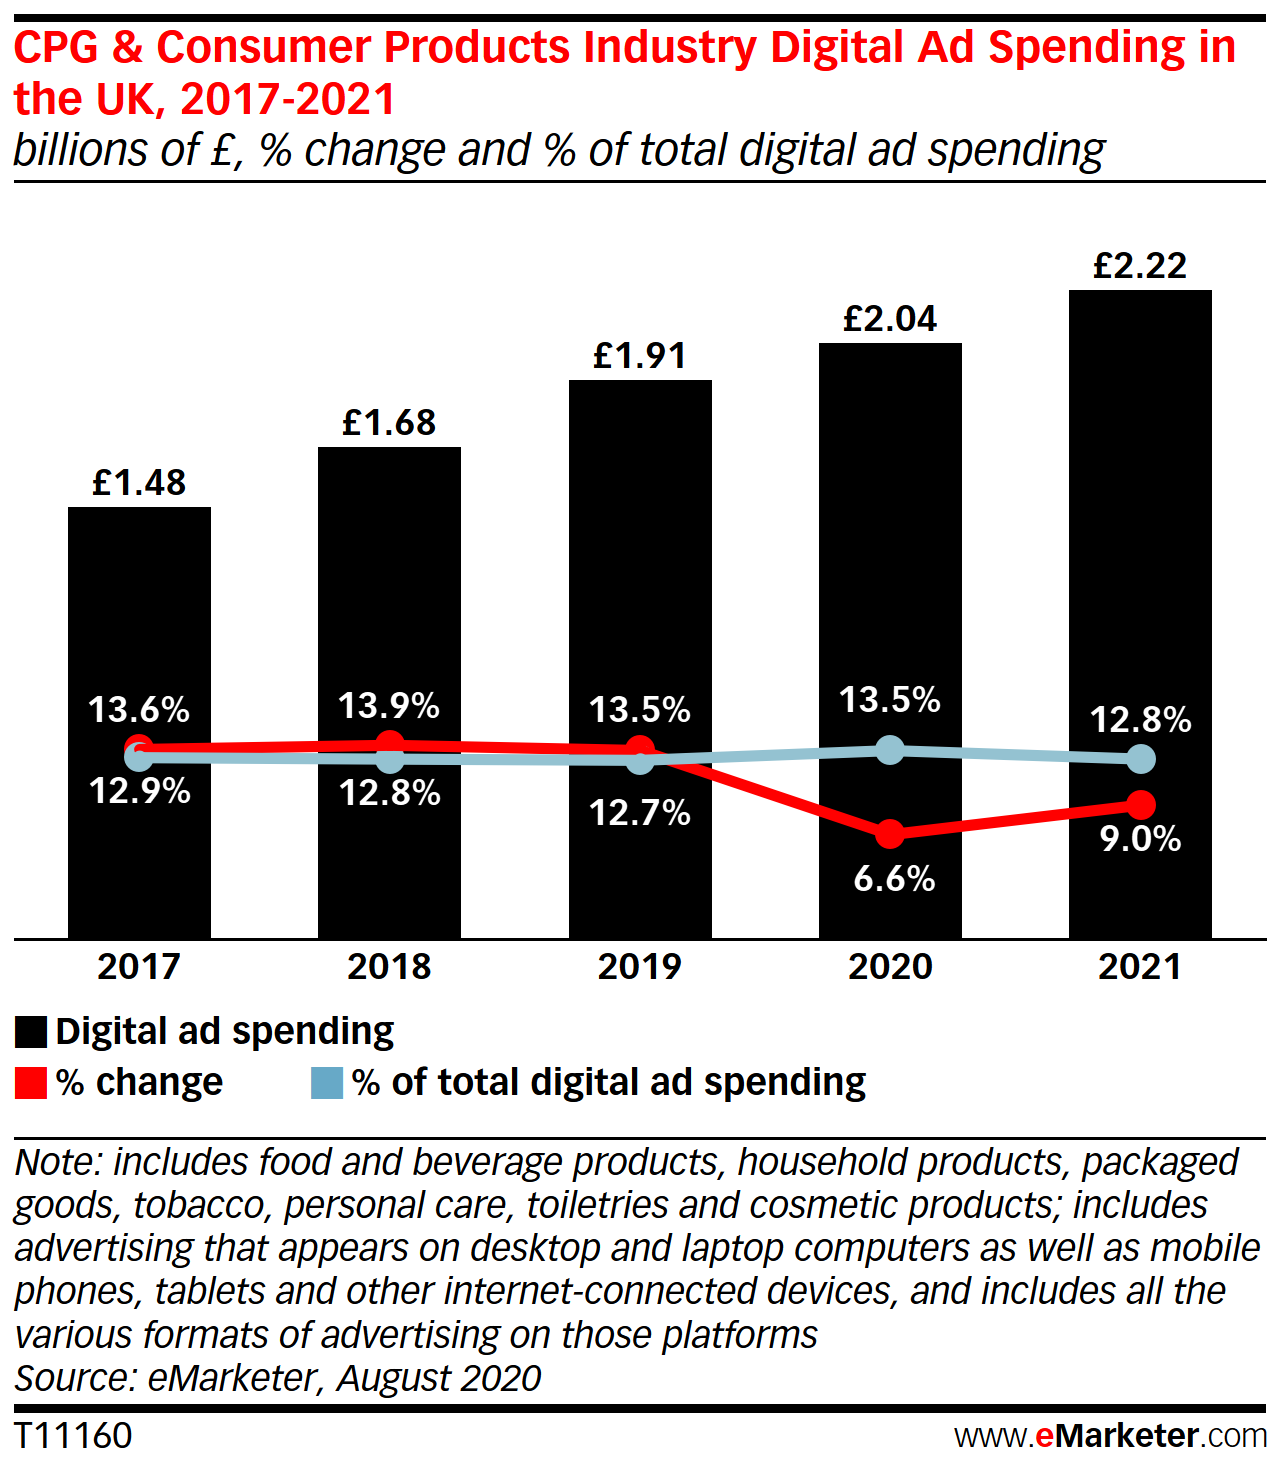 In the UK, the CPG Industry Is the Second-Highest Digital Ad Spender This Year, Behind Only Retail